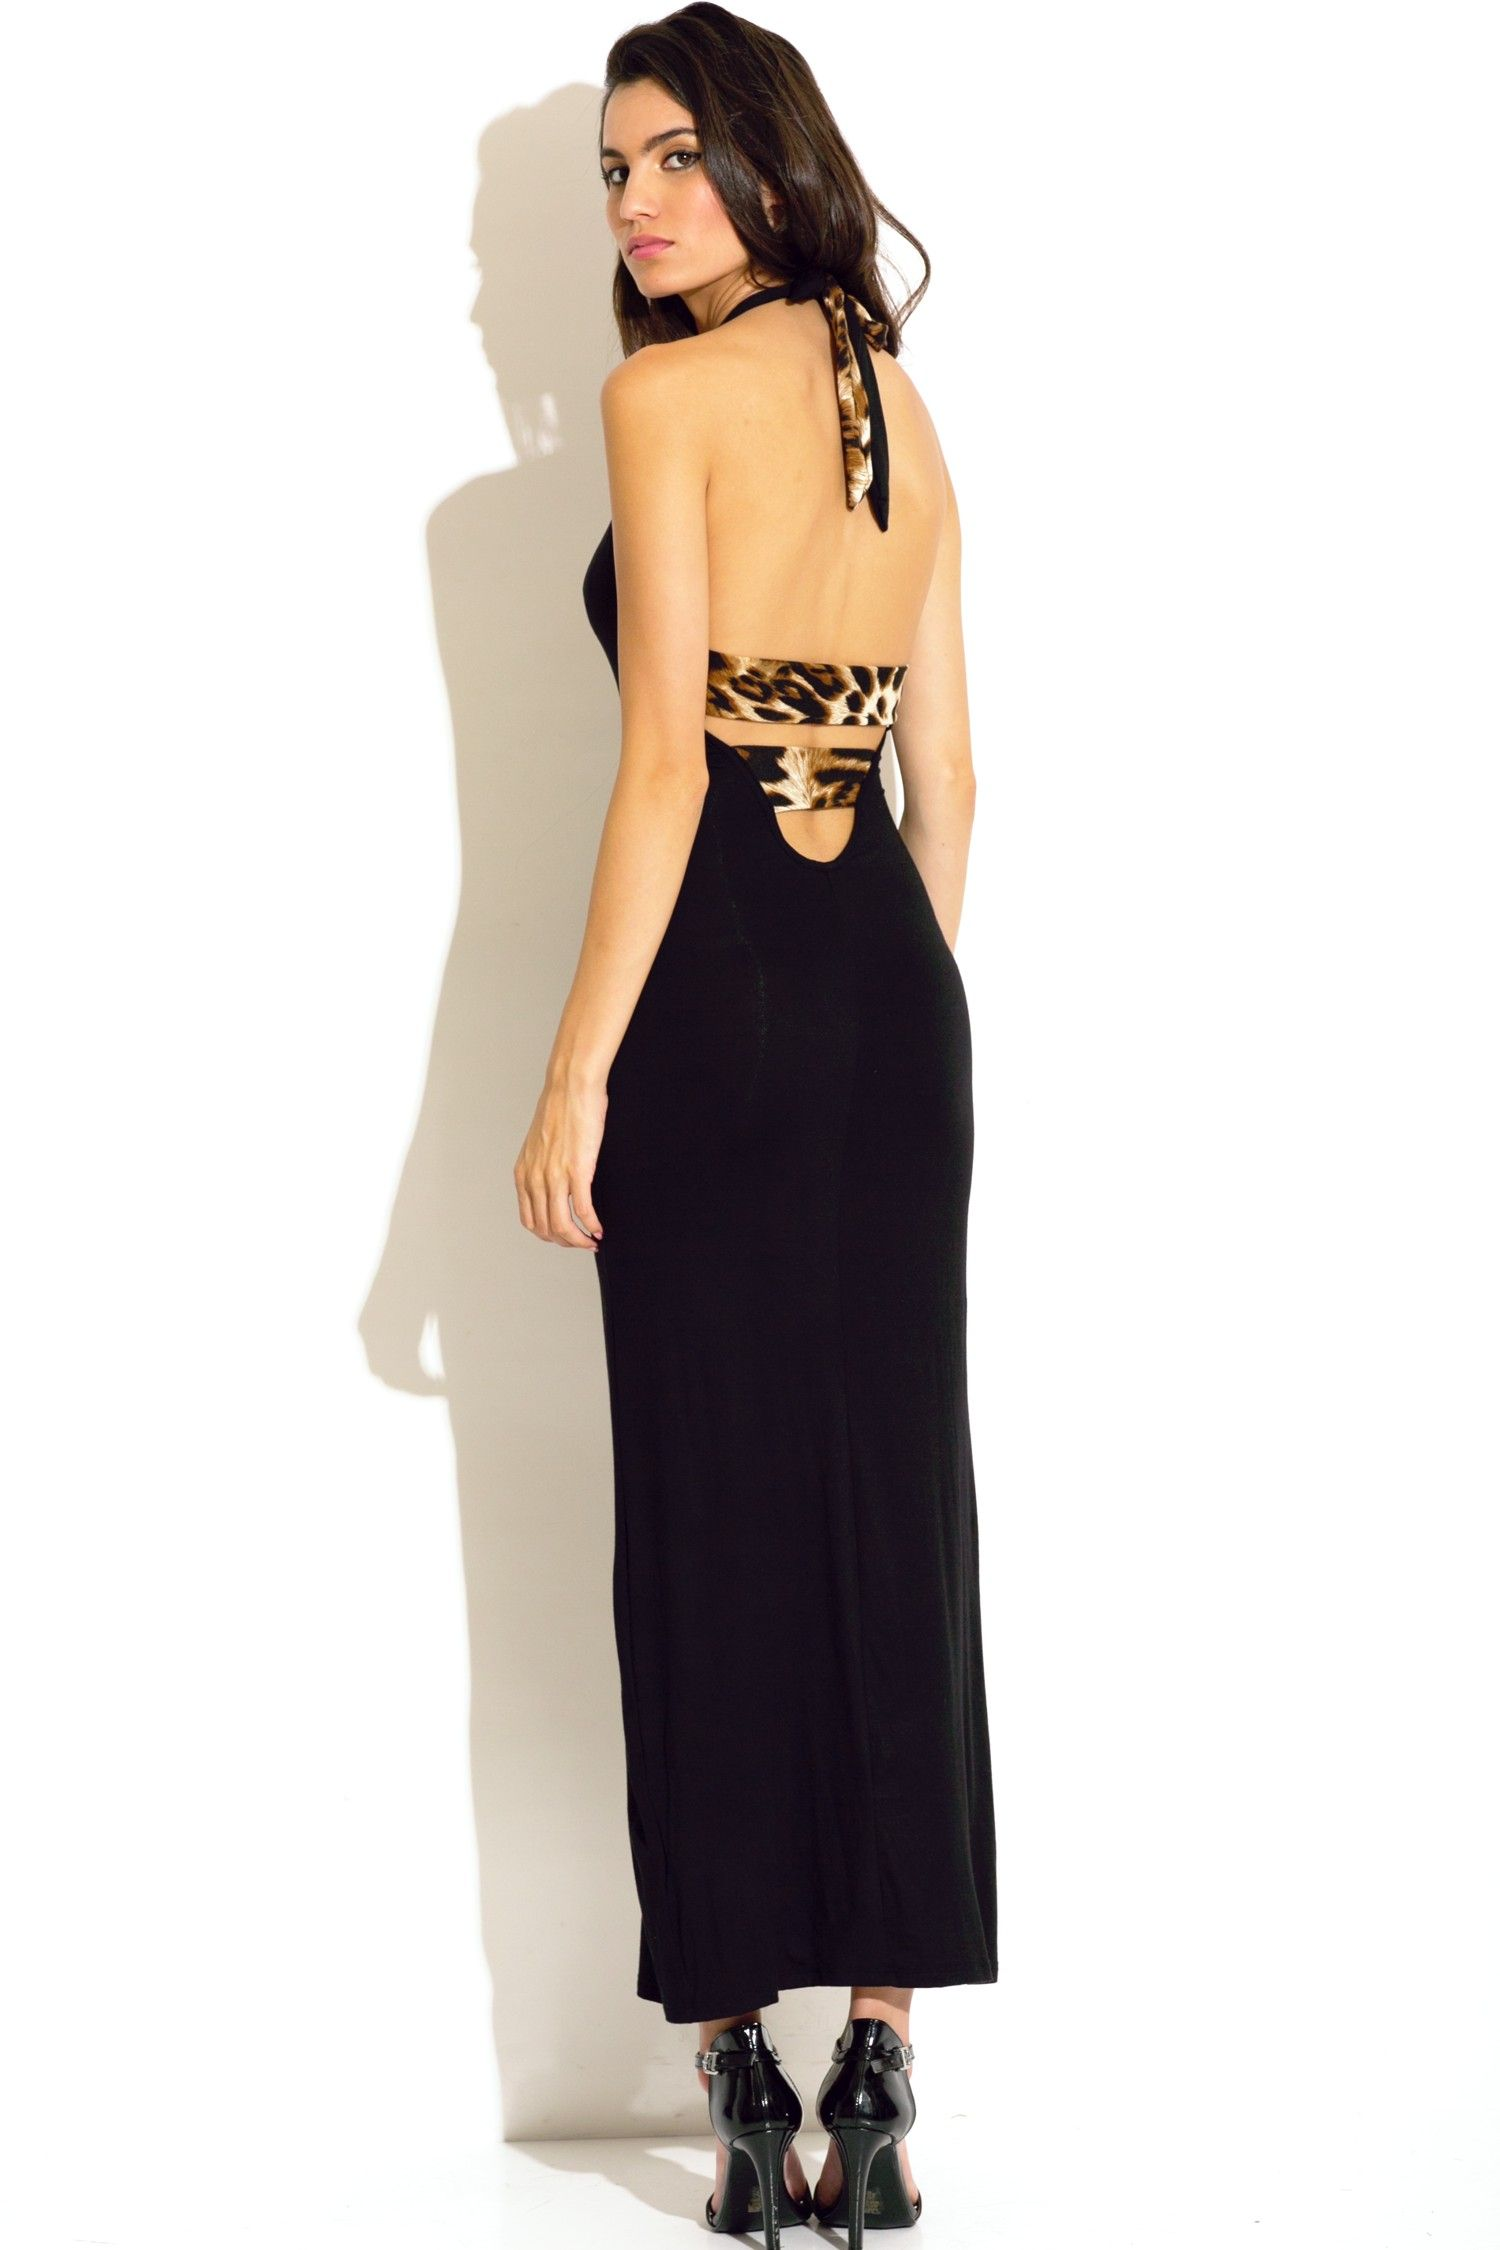 stripe me down - Trendy Cute black and leopard animal print cut out backless high slit fitted strappy maxi dress #fashion #1015store   $30